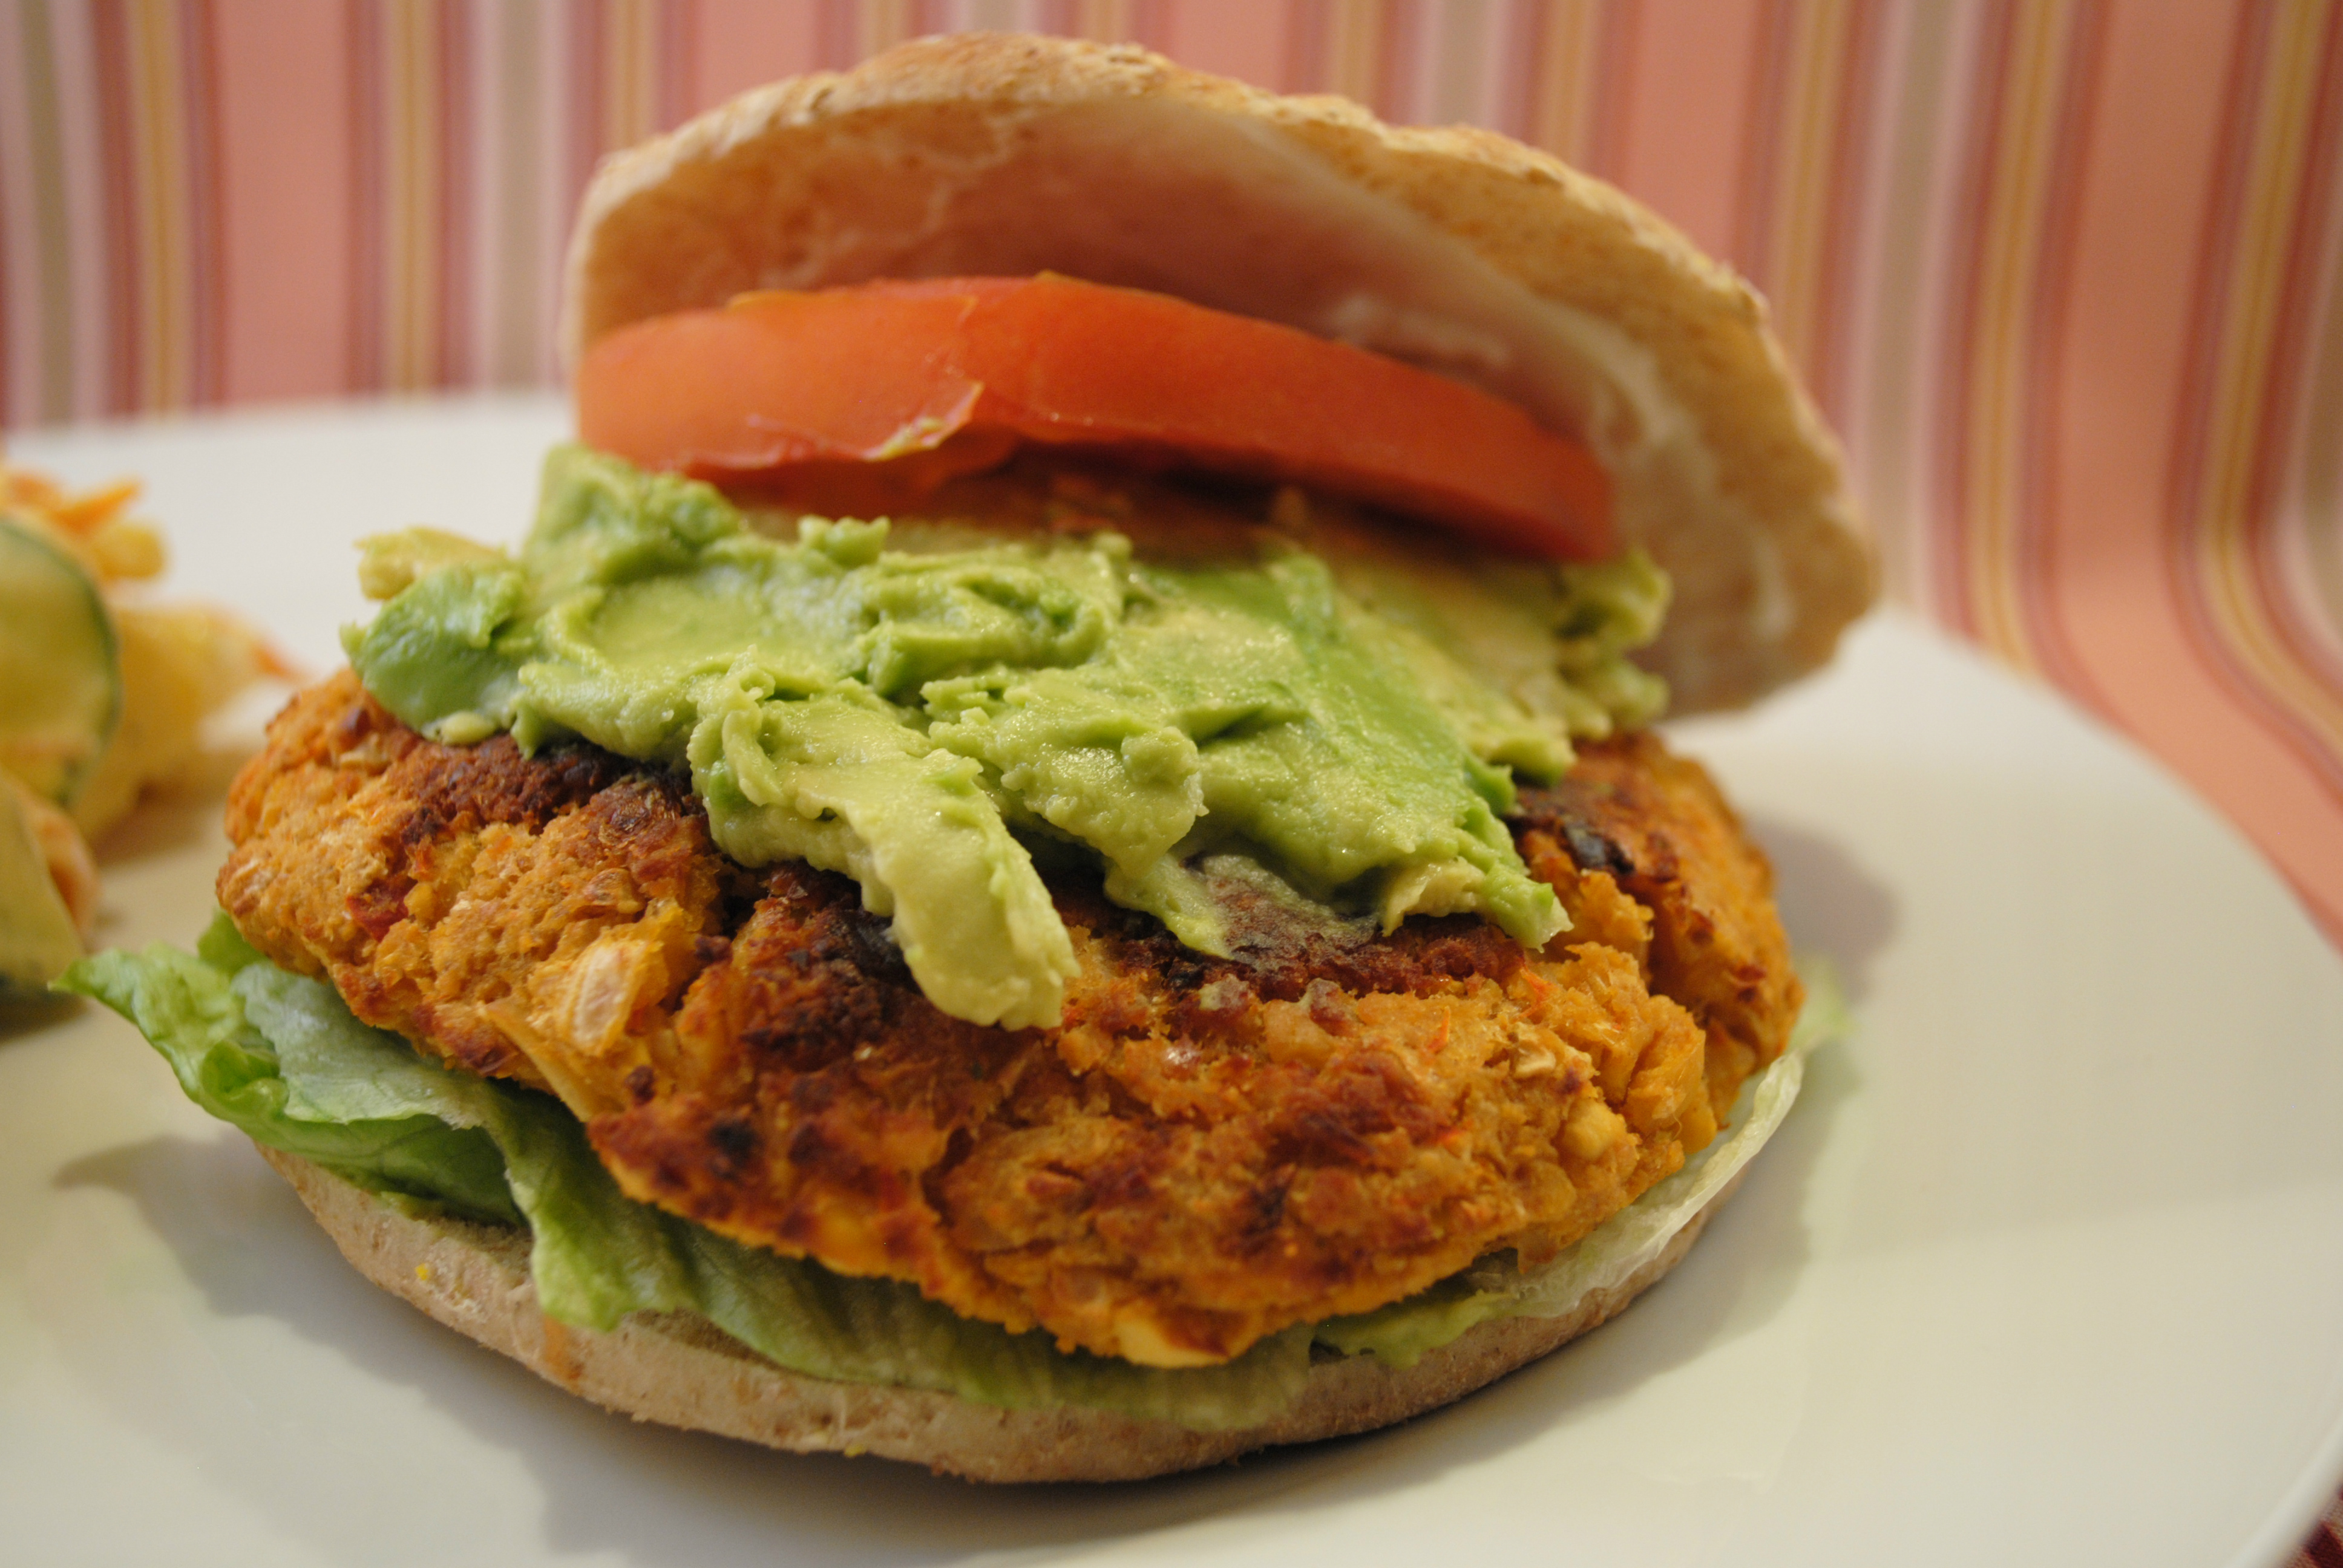 Spicy Chickpea Burgers (4-5 patties, depending on size/thickness)